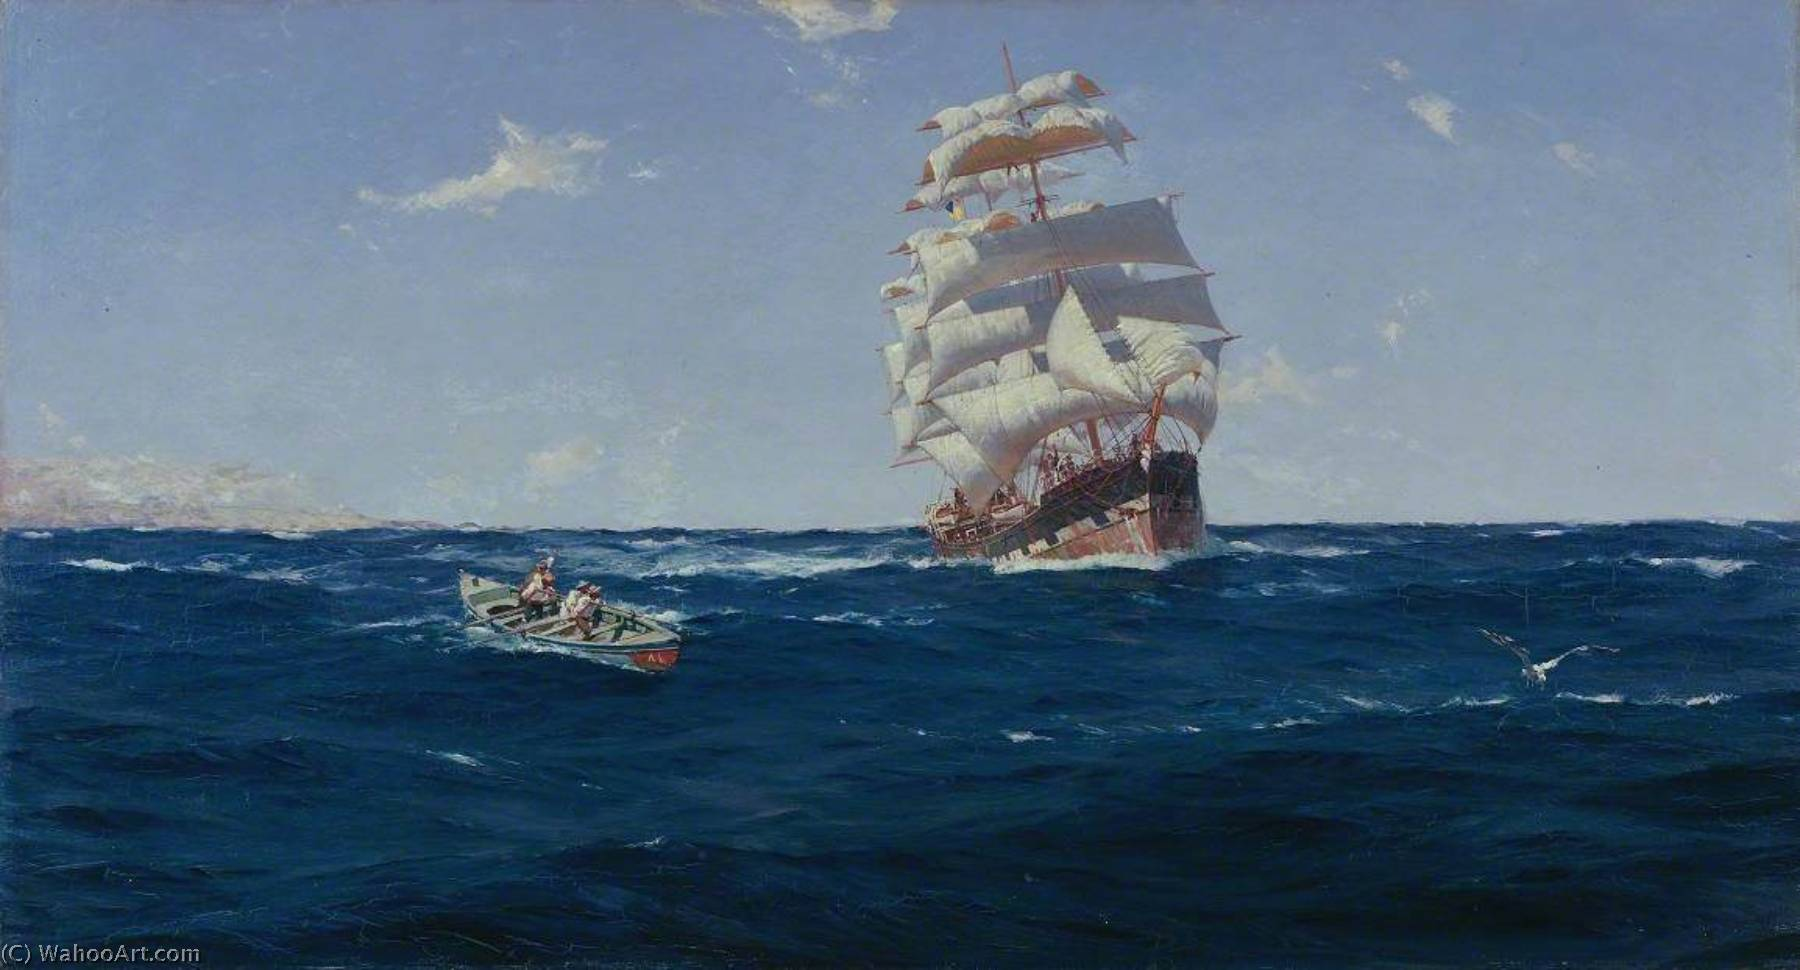 Off Valparaiso, 1899 by Thomas Jacques Somerscales (1842-1927) | WahooArt.com